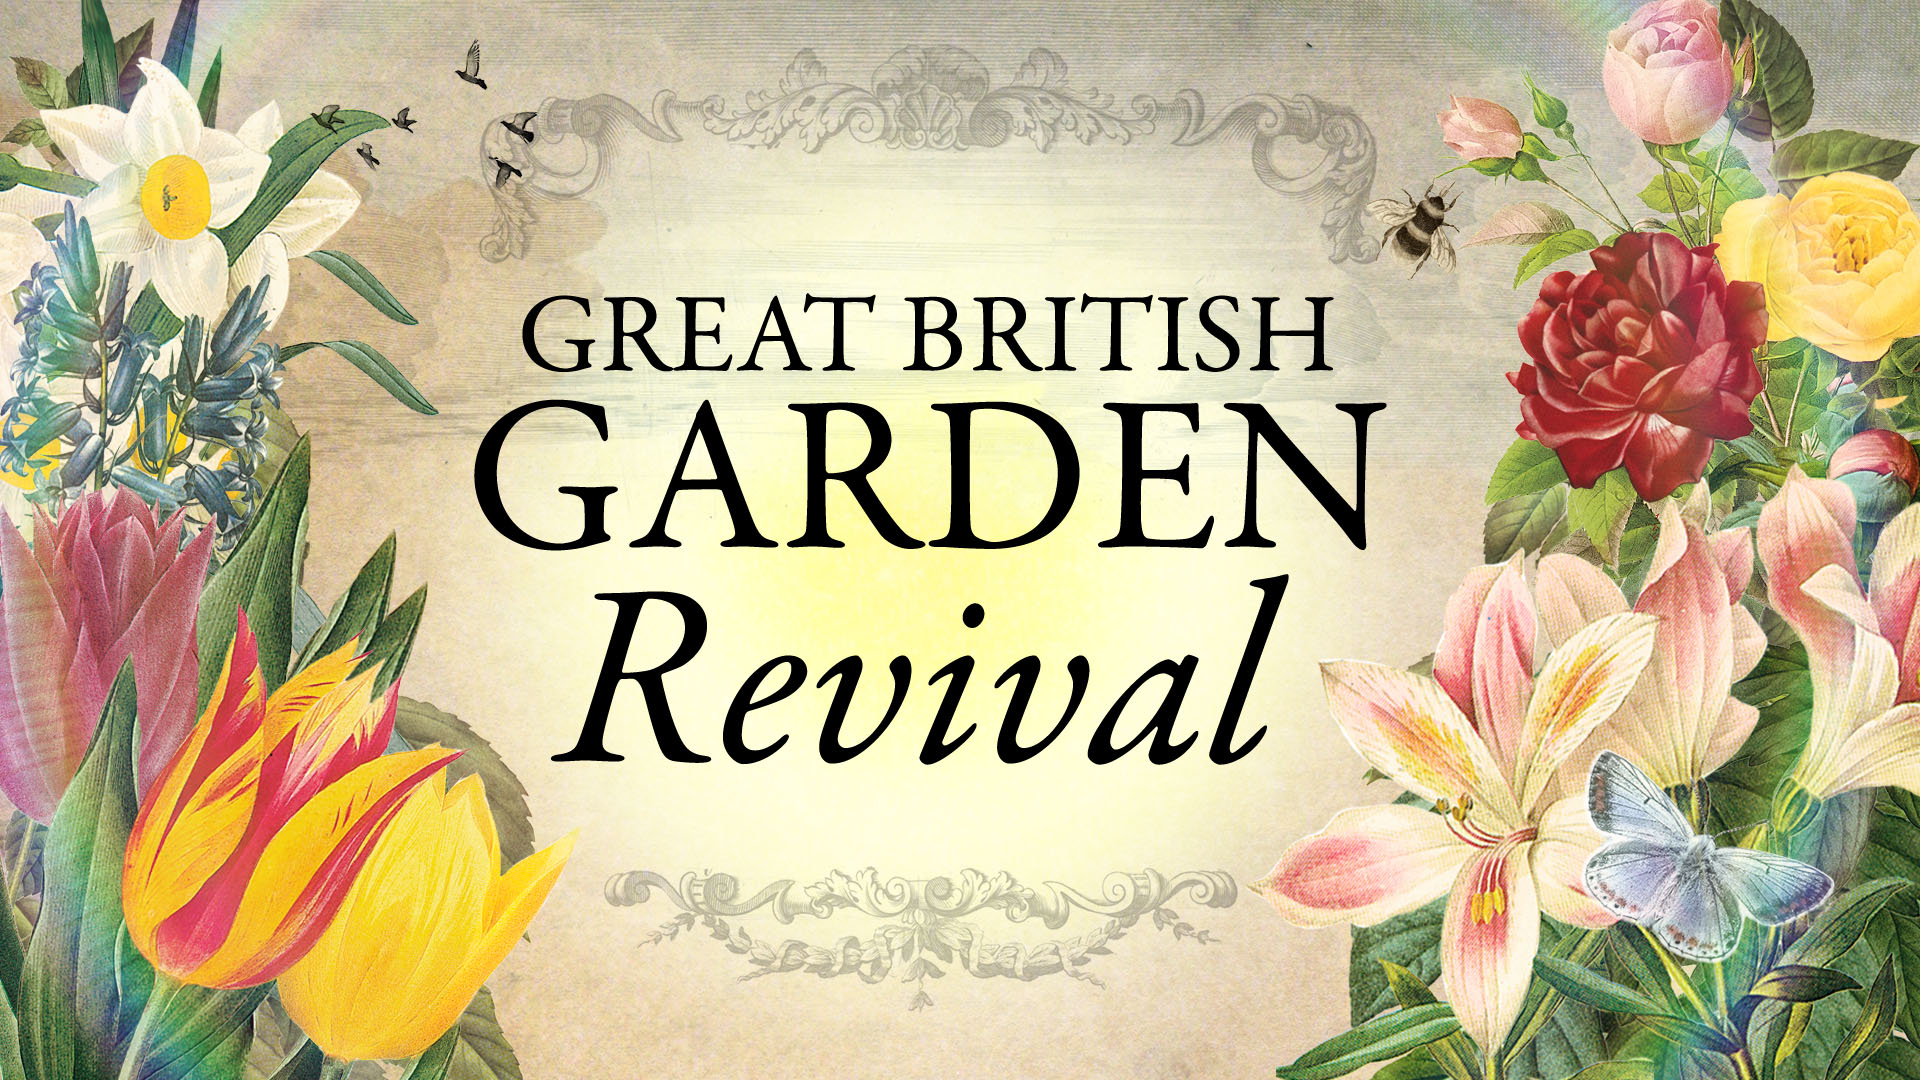 Great British Garden Revival Series 2 – details of first 3 episodes